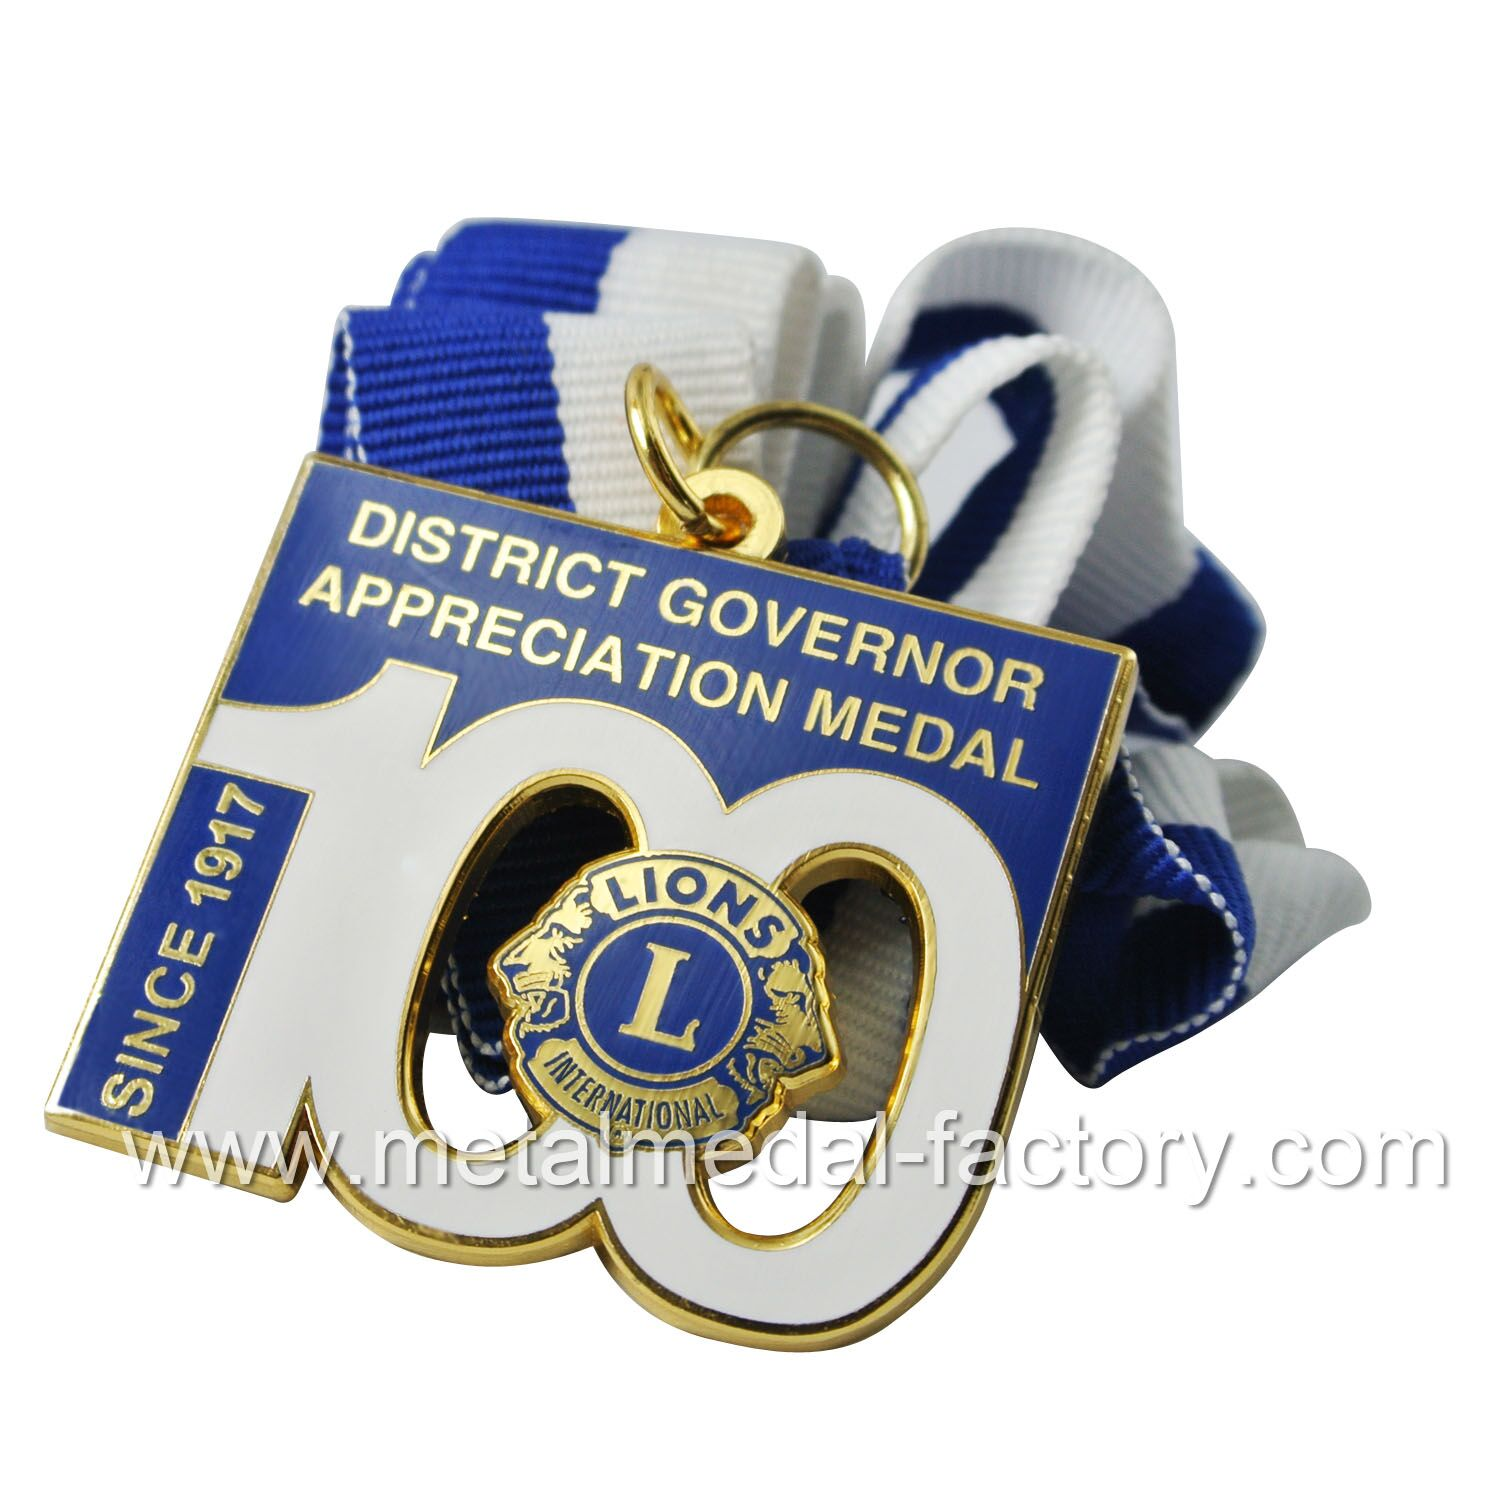 Lion Clubs medals